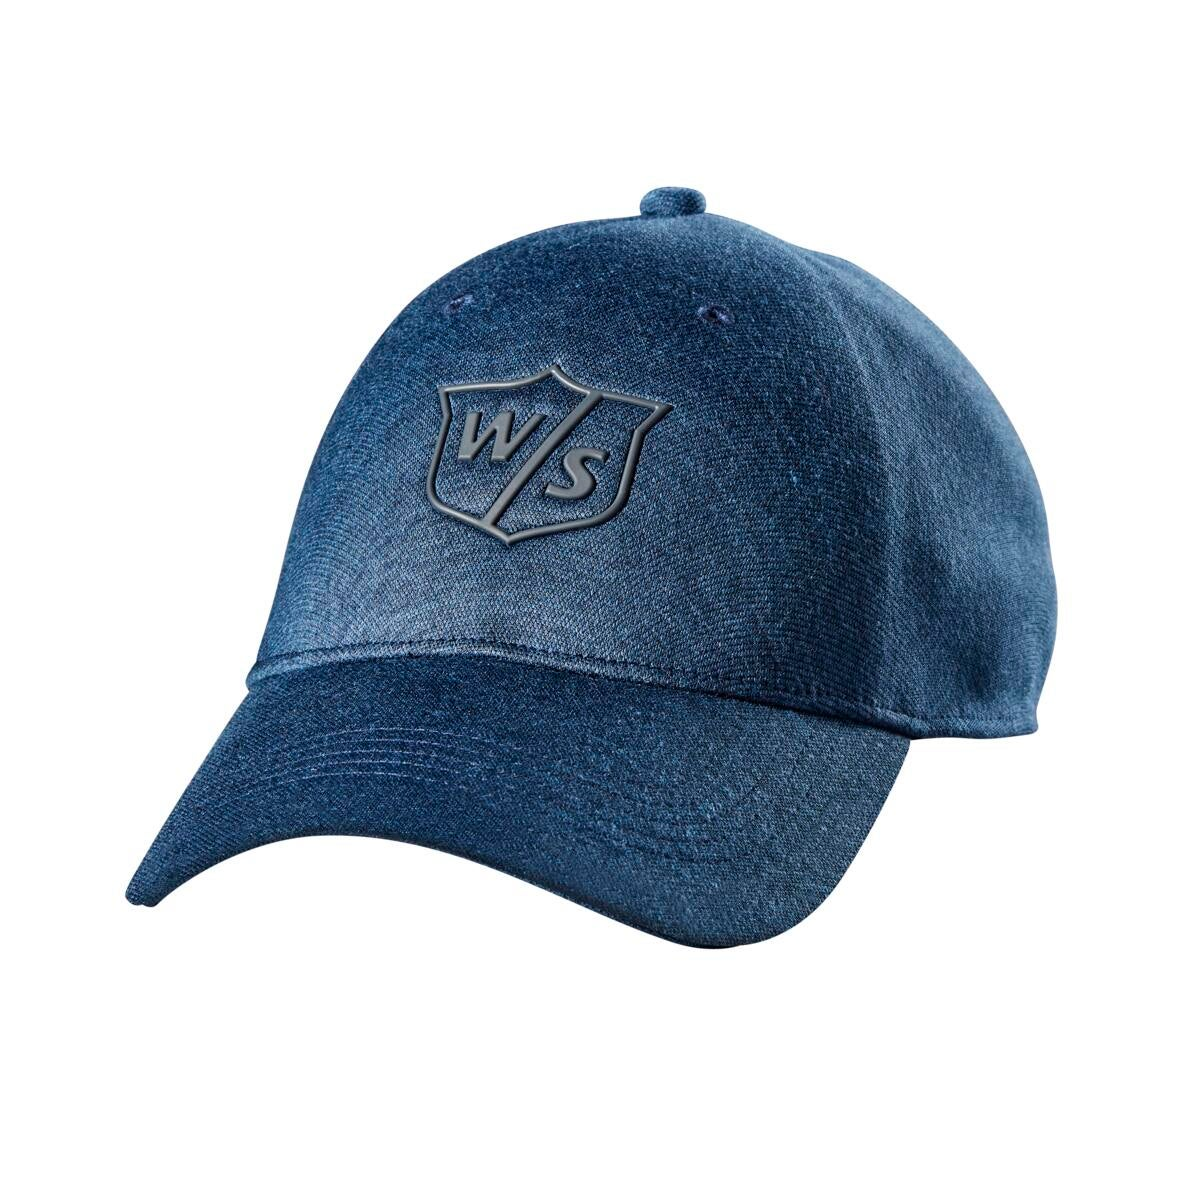 Wilson Staff One Touch Cap